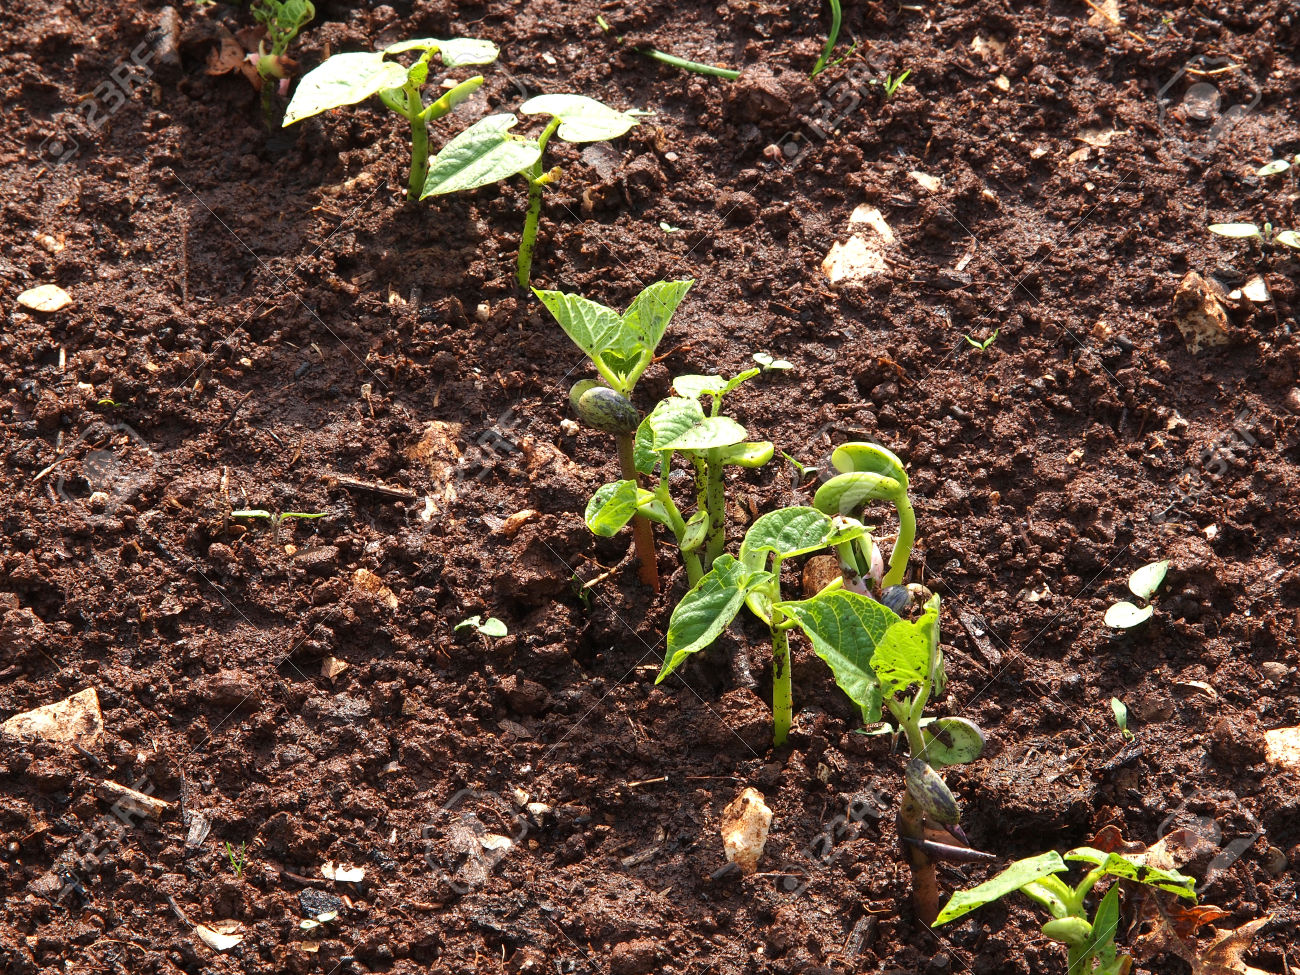 French beans sprout with two leafs in vegetable garden